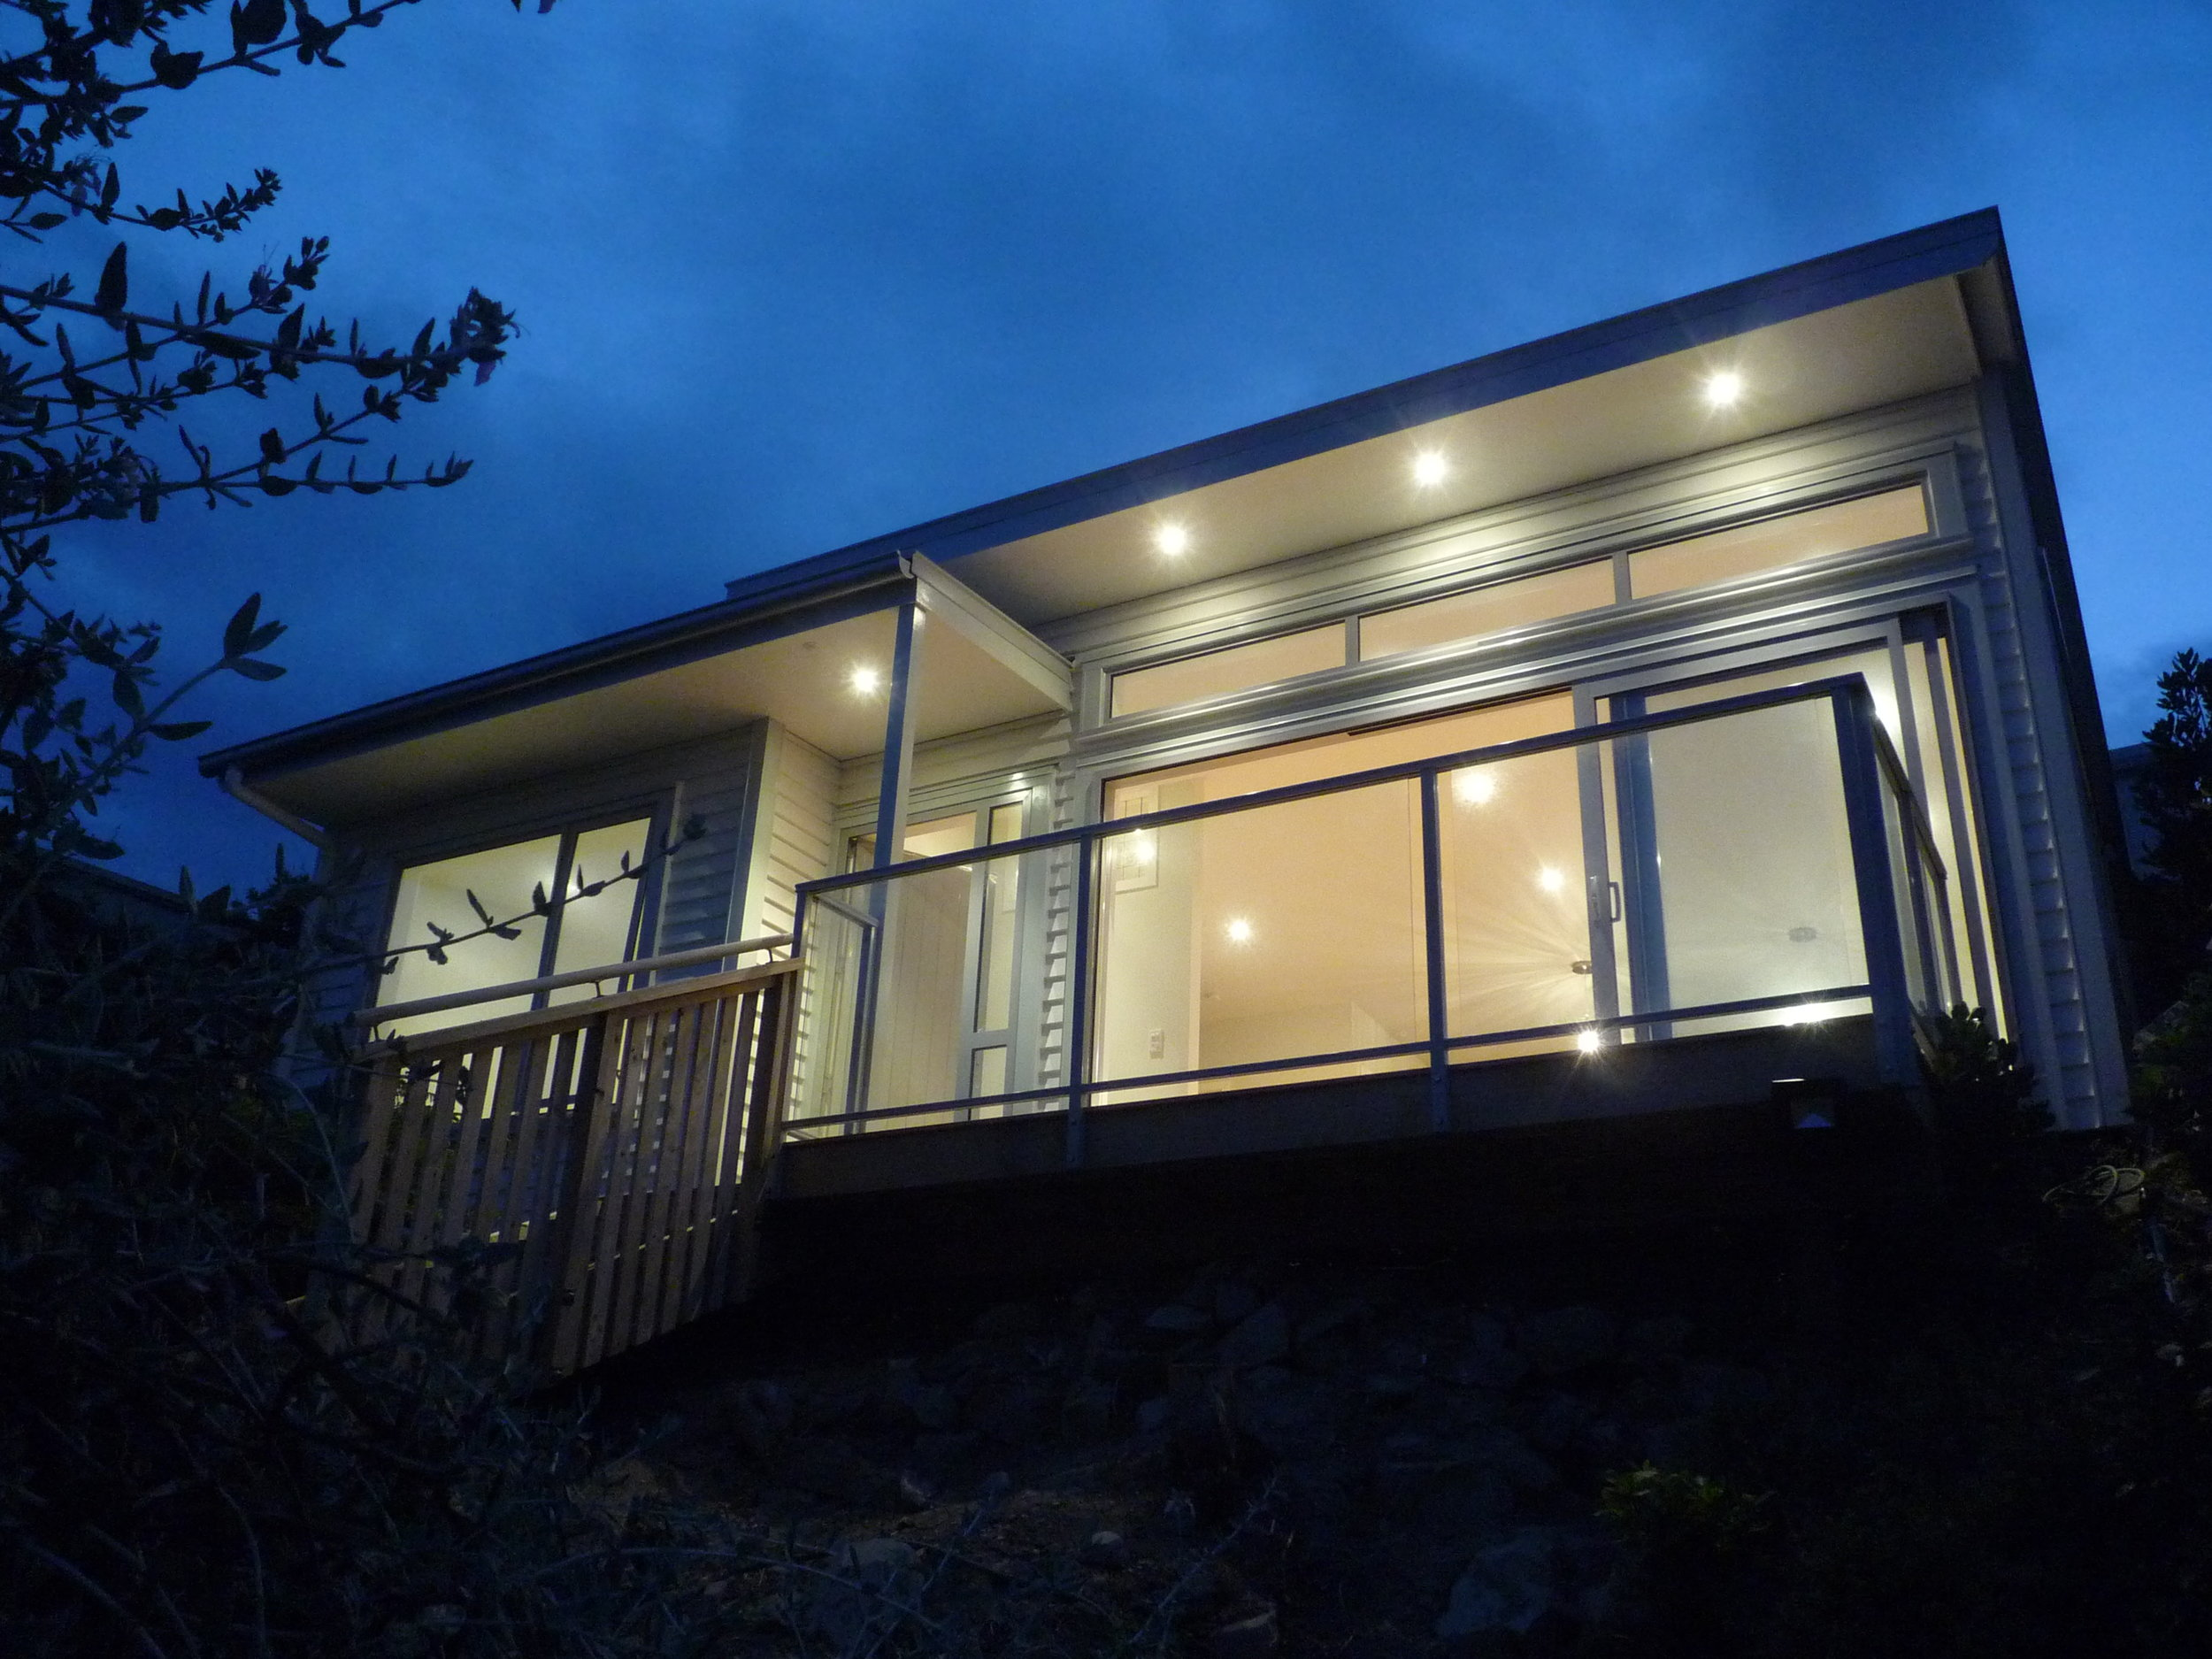 Roseneath New Build  - An existing sleepout at the top of a Roseneath property was mostly demolished to make way for this new 84m2 house, comprising 3 bedrooms, 1 bathroom and a sunny open space Living/Dining/Kitchen. The limited available space...  more